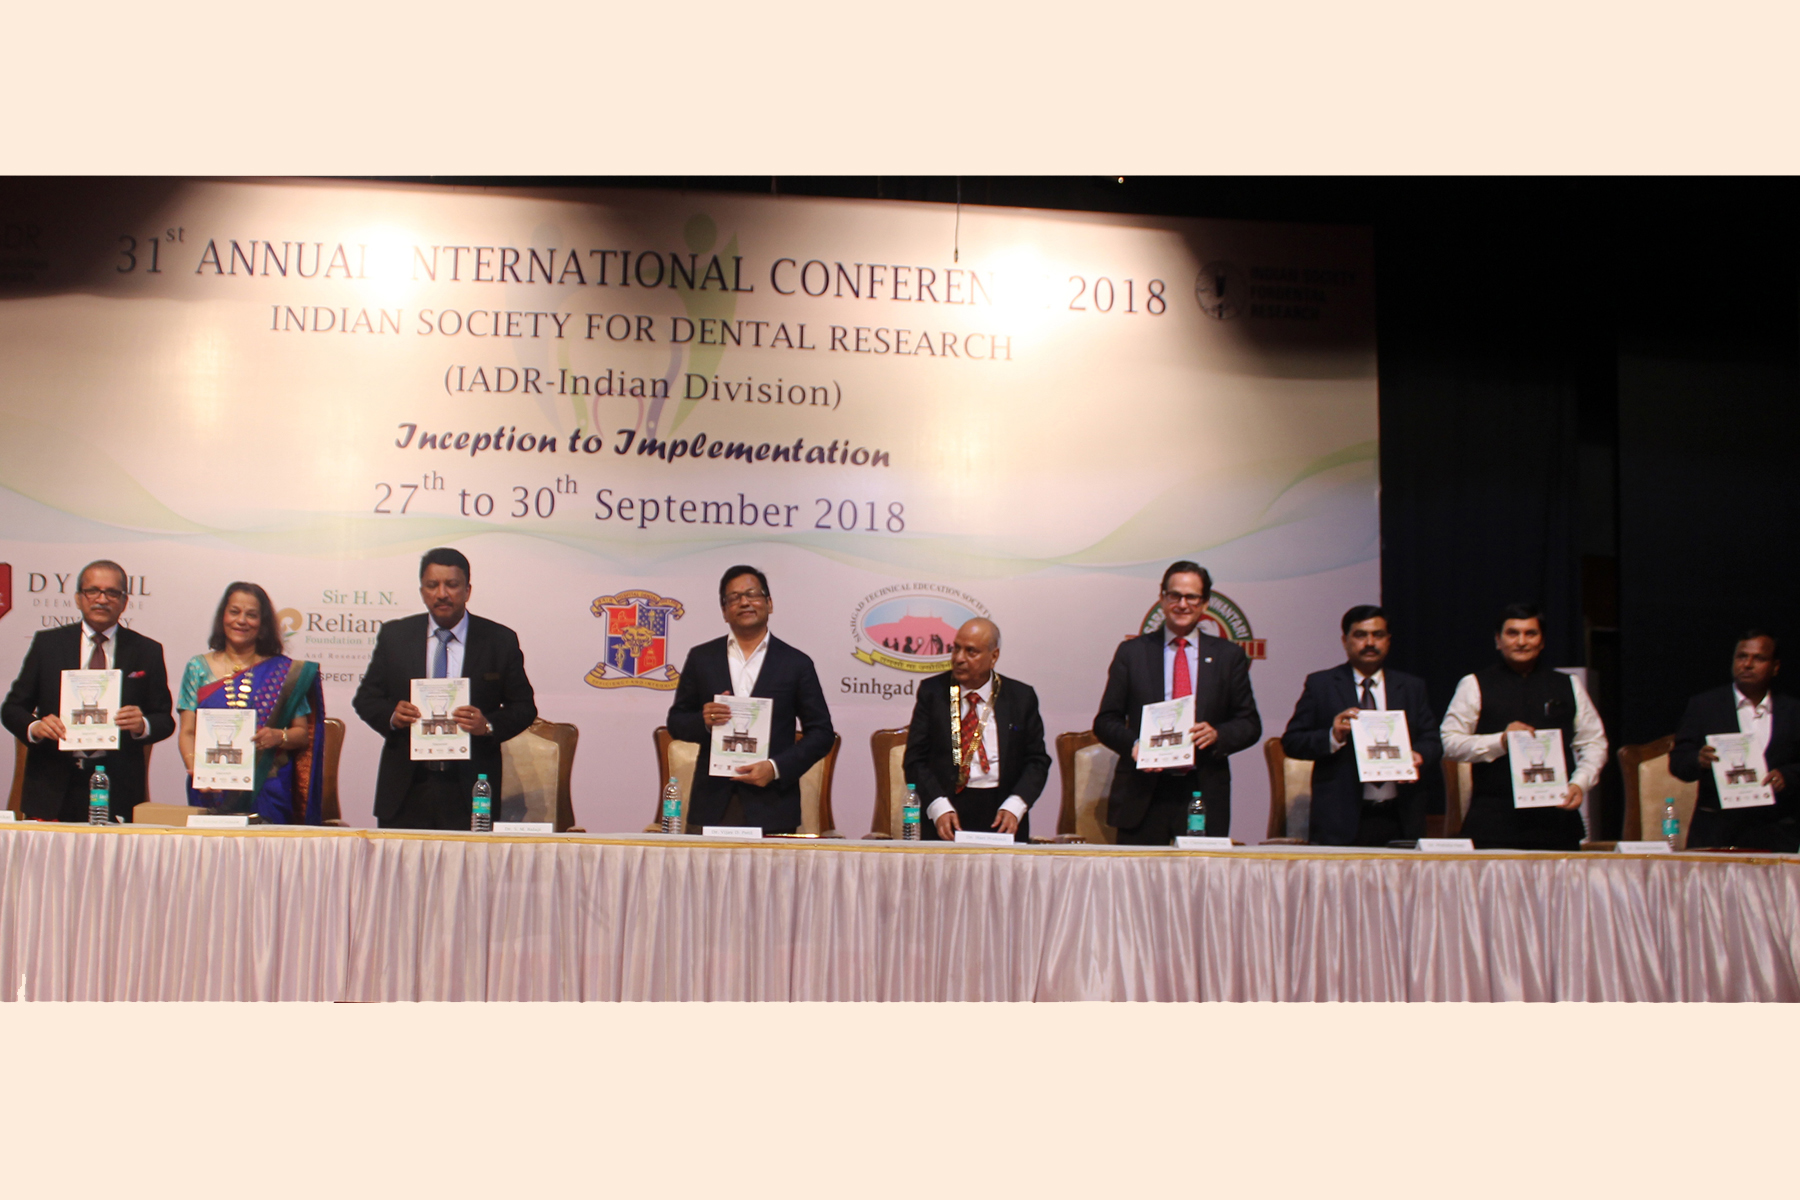 Release of the conference souvenir by the dignitaries at the 31st Annual Conference of the ISDR